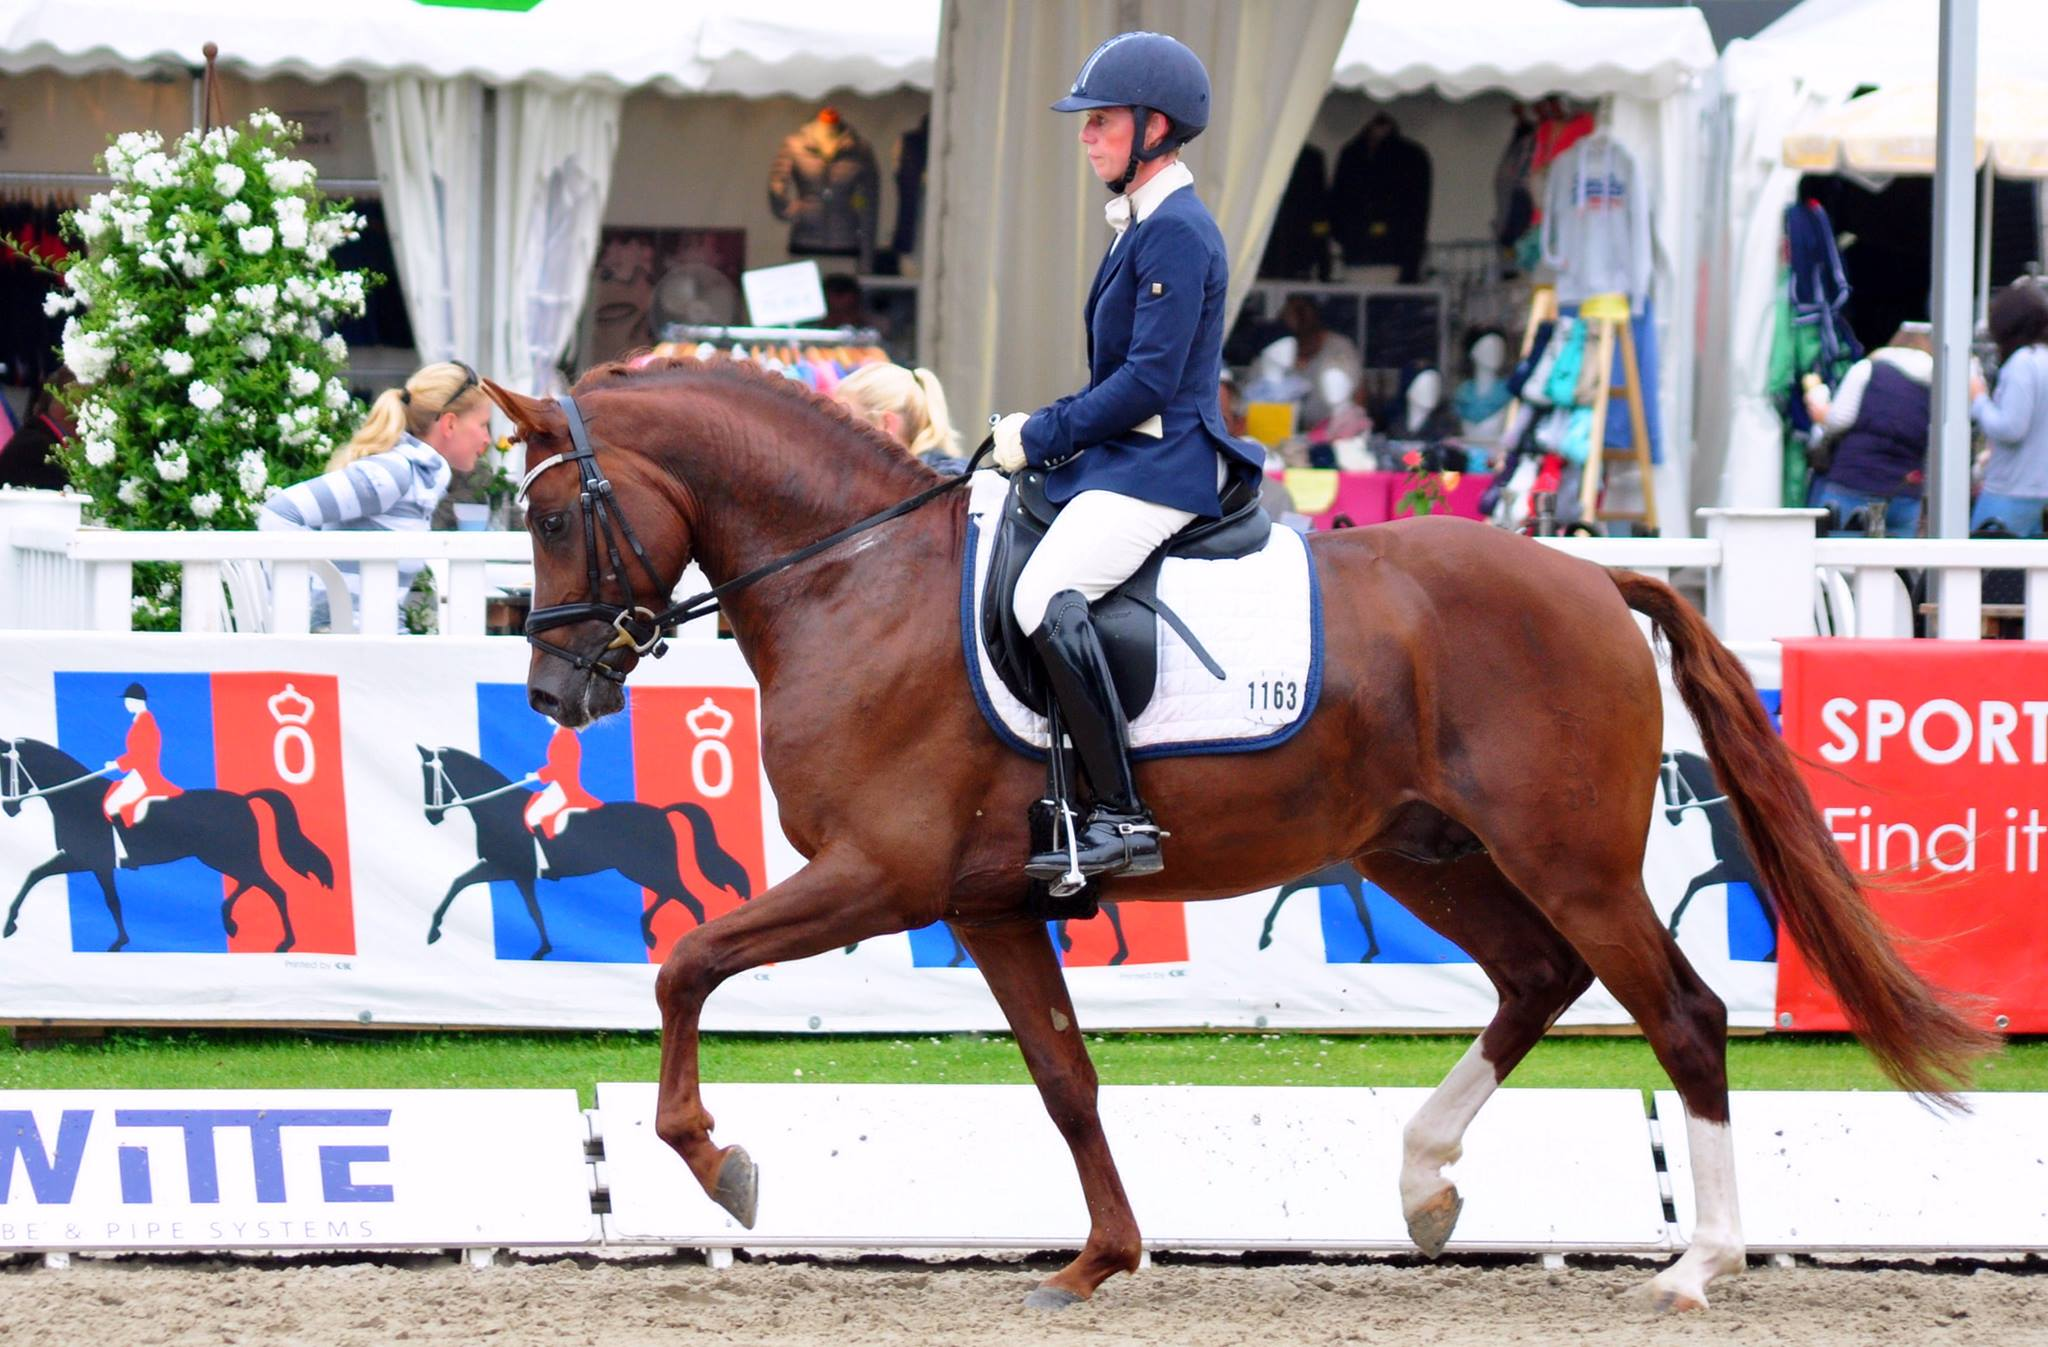 4j. Reitpony Hengst v. Golden Rock